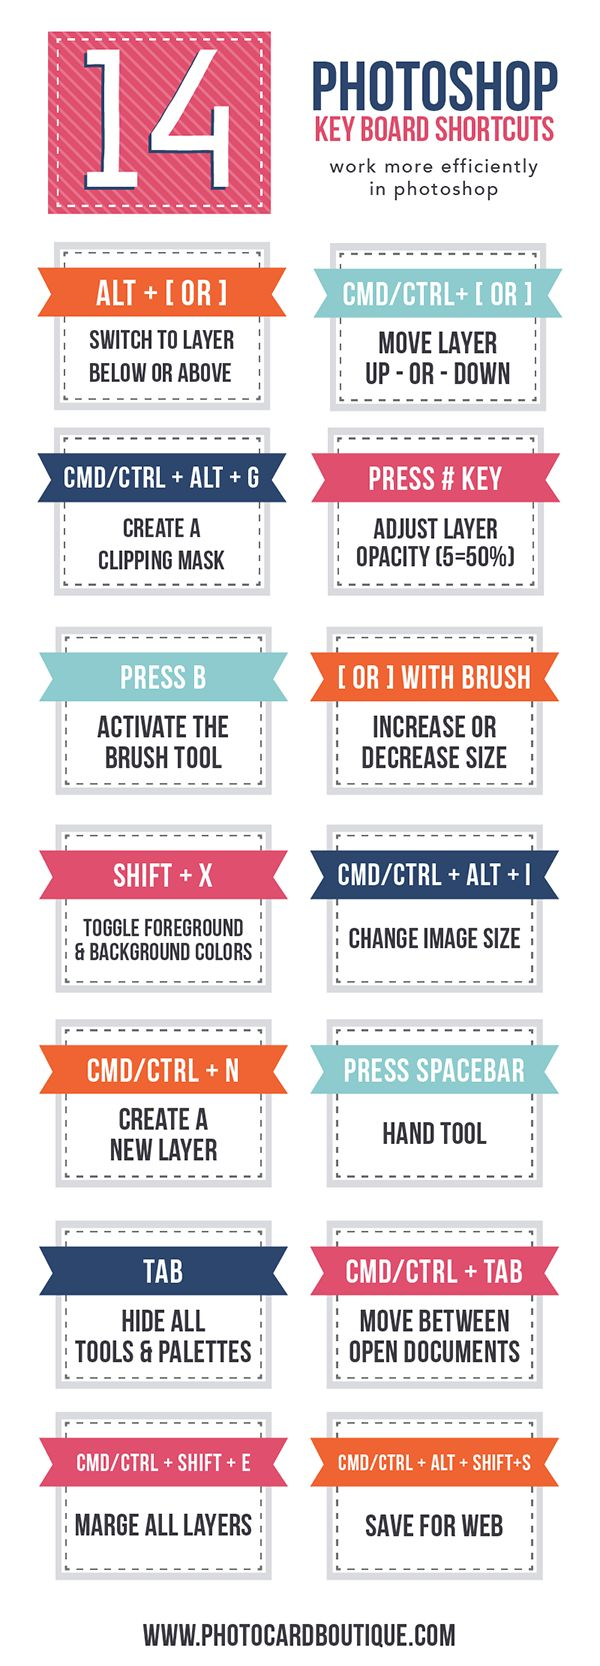 14 PHOTOSHOP SHORTCUTS - WORK MORE EFFICIENTLY!